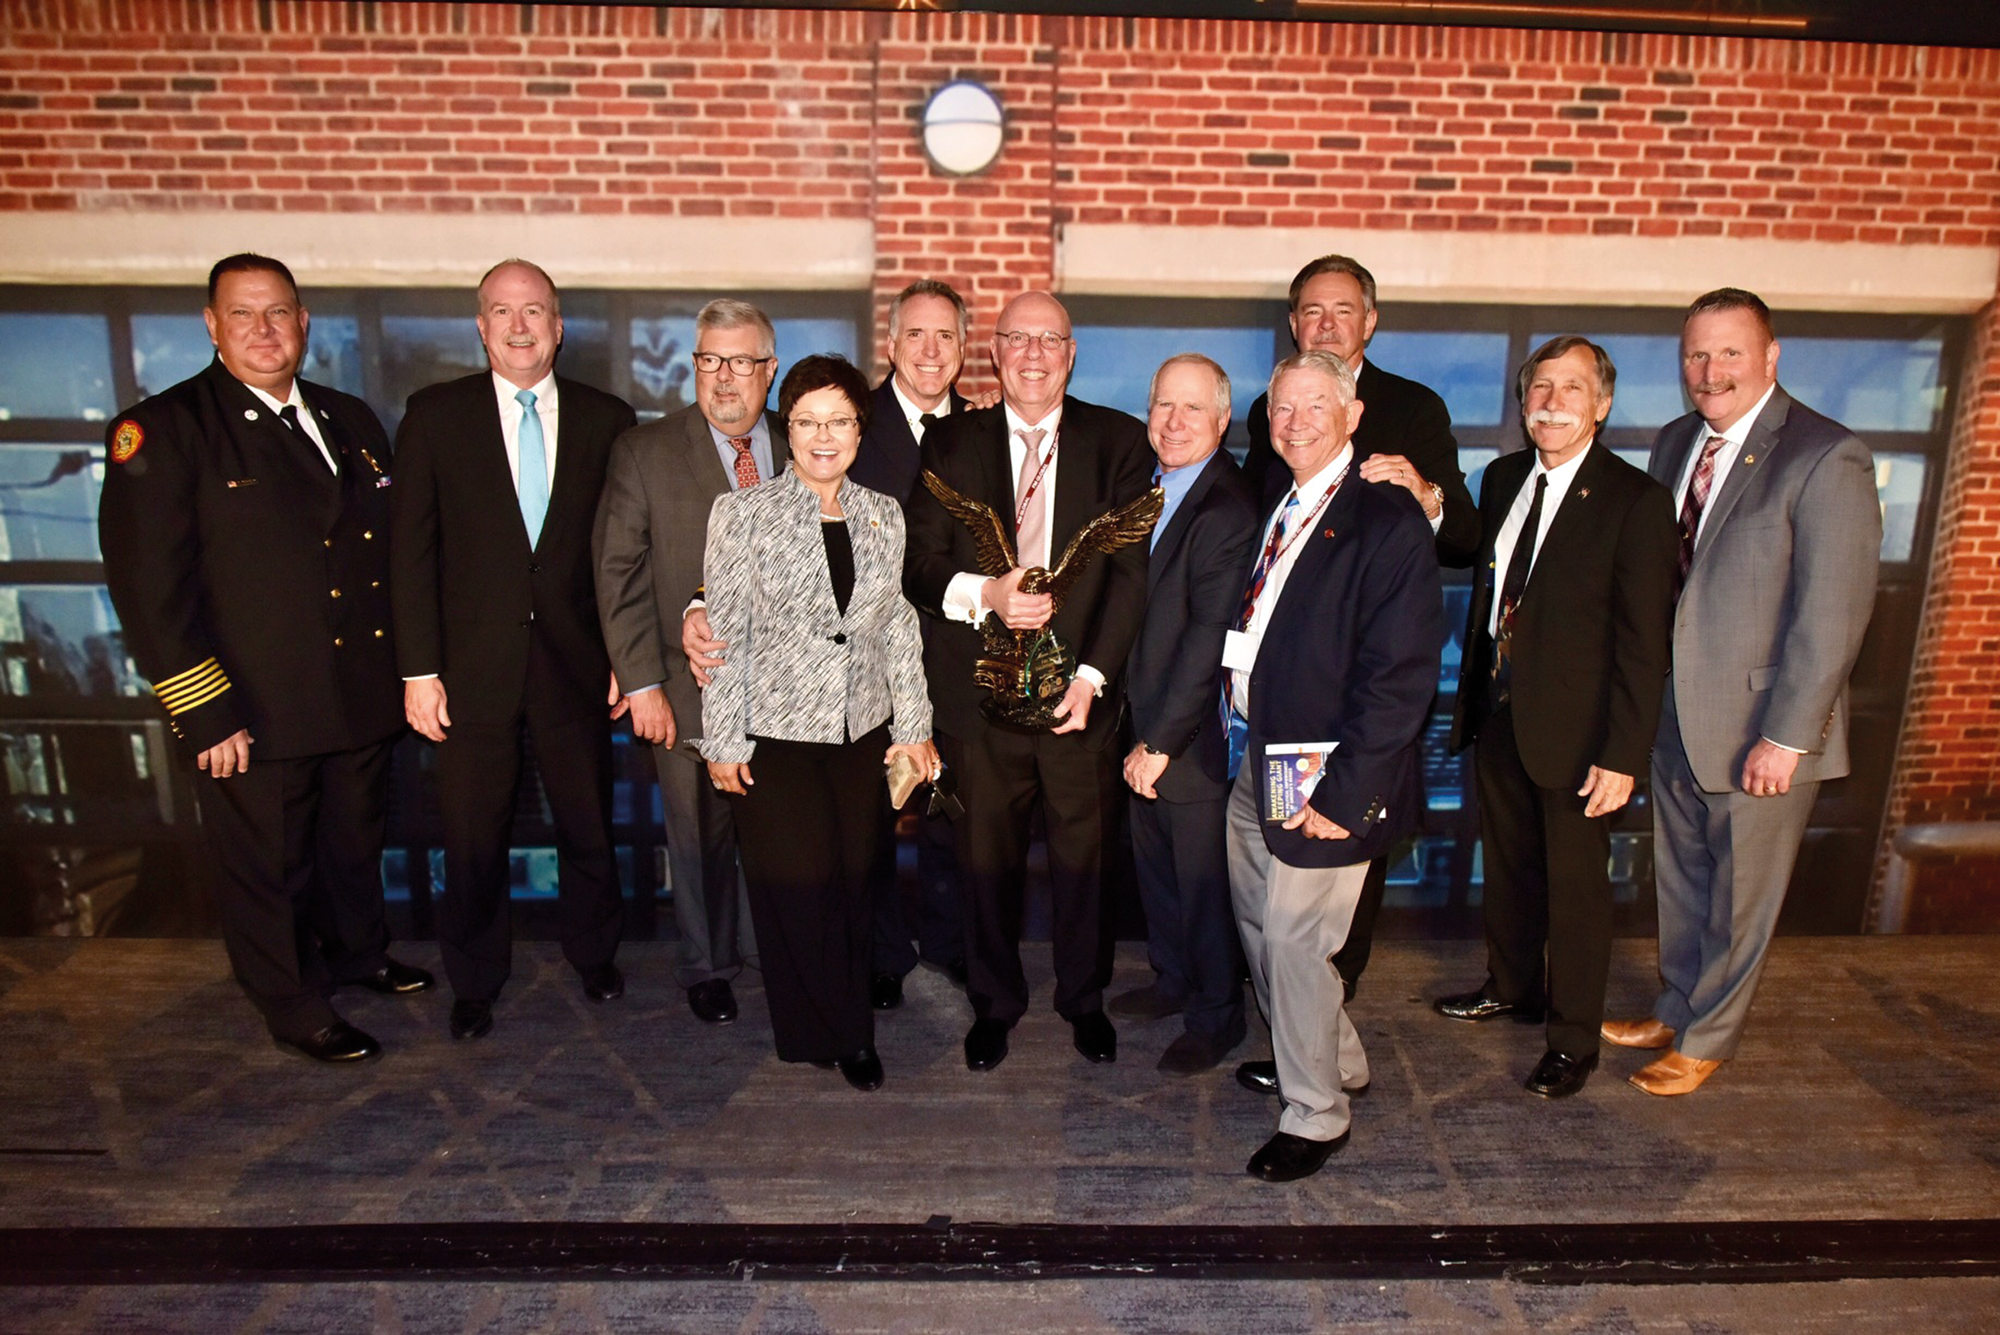 The author is flanked by NFPA President & CEO Jim Pauley (second from the left) and members of the Metro Chiefs after receiving the Congressional Fire Services Institute (CFSI) Mason Langford Award last year.